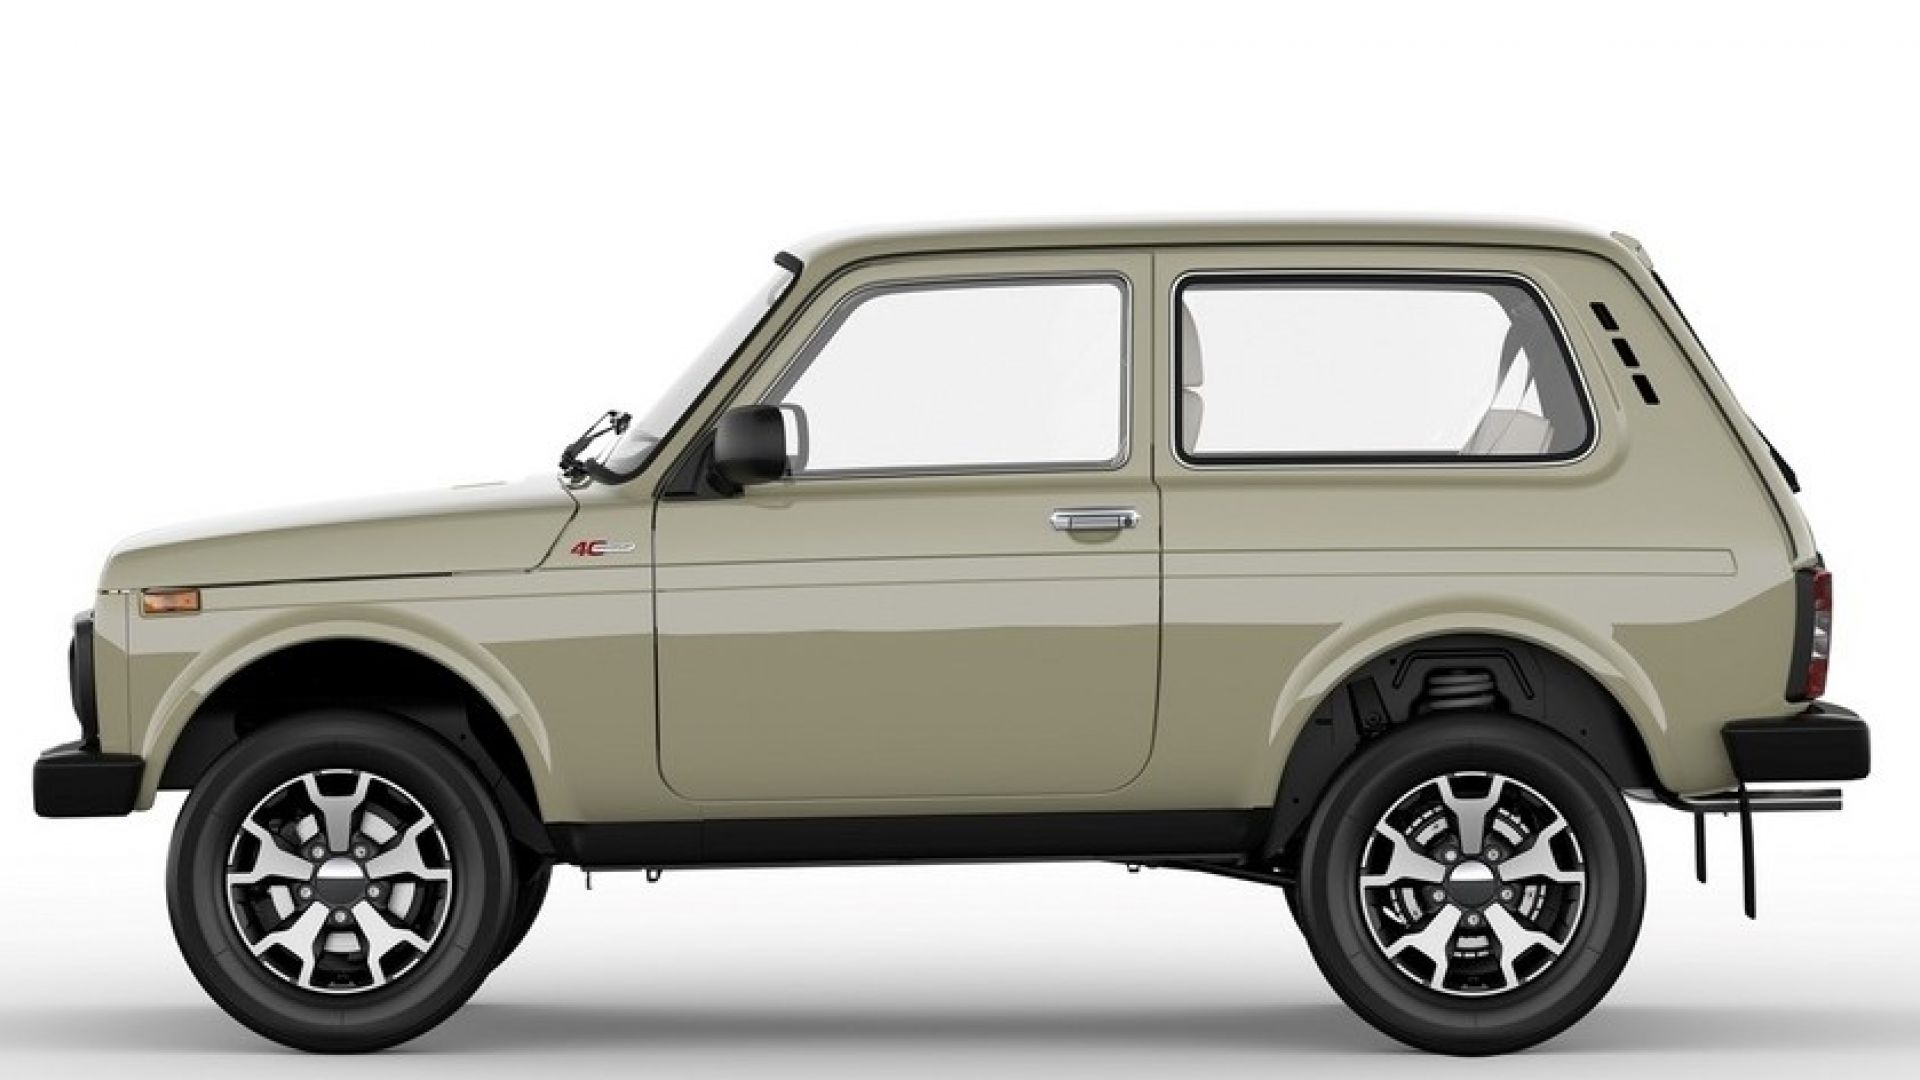 4x4 lada niva lada niva 4x4 picture 2 reviews news specs buy car file lada niva 4x4 lada niva. Black Bedroom Furniture Sets. Home Design Ideas